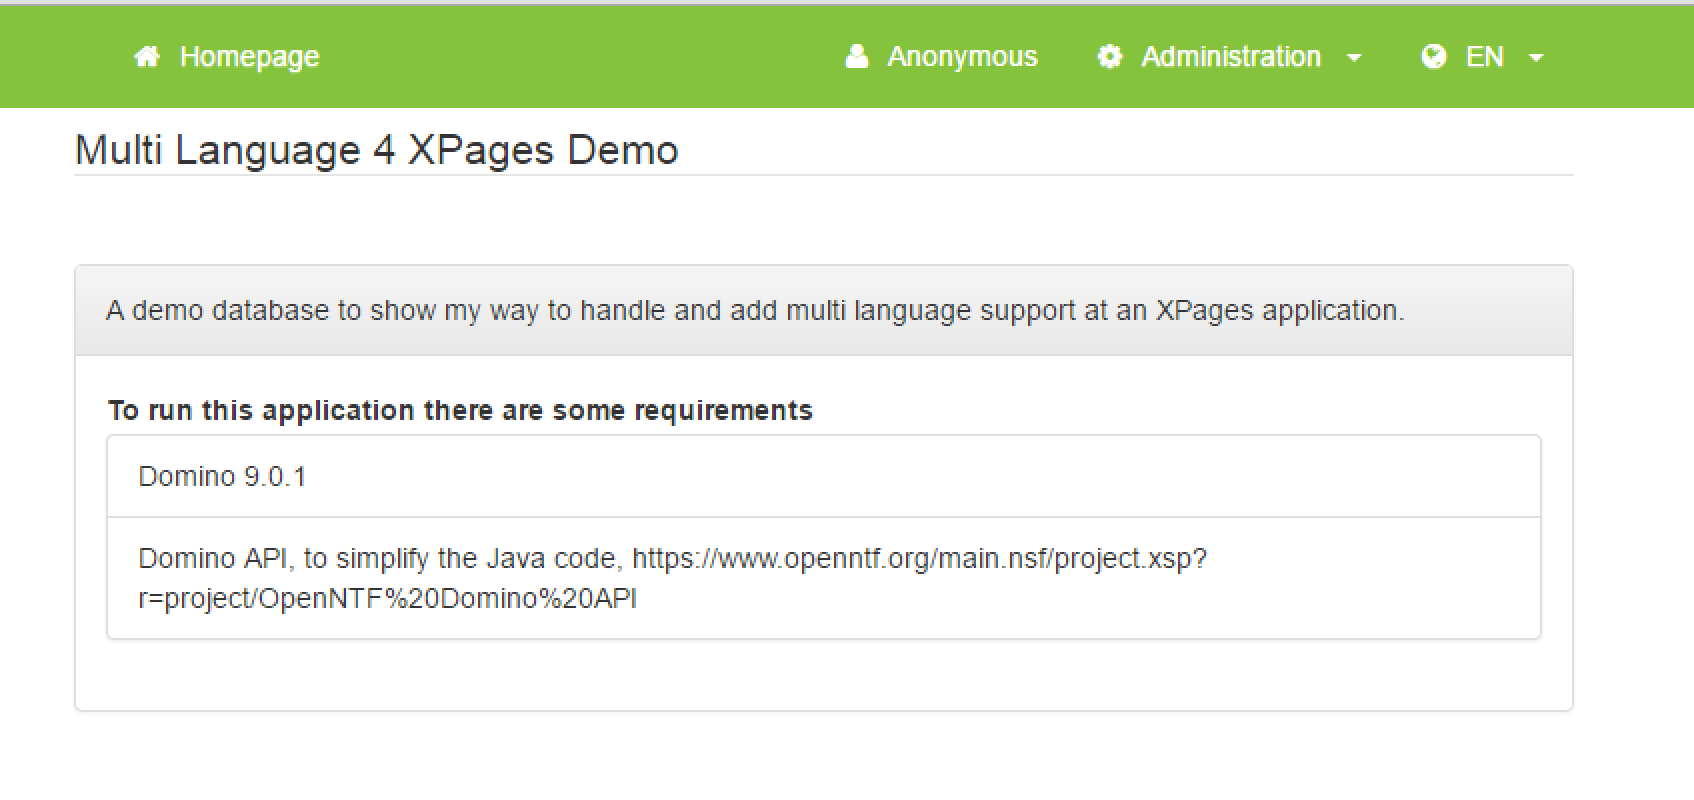 Multi language 4 Xpages demo